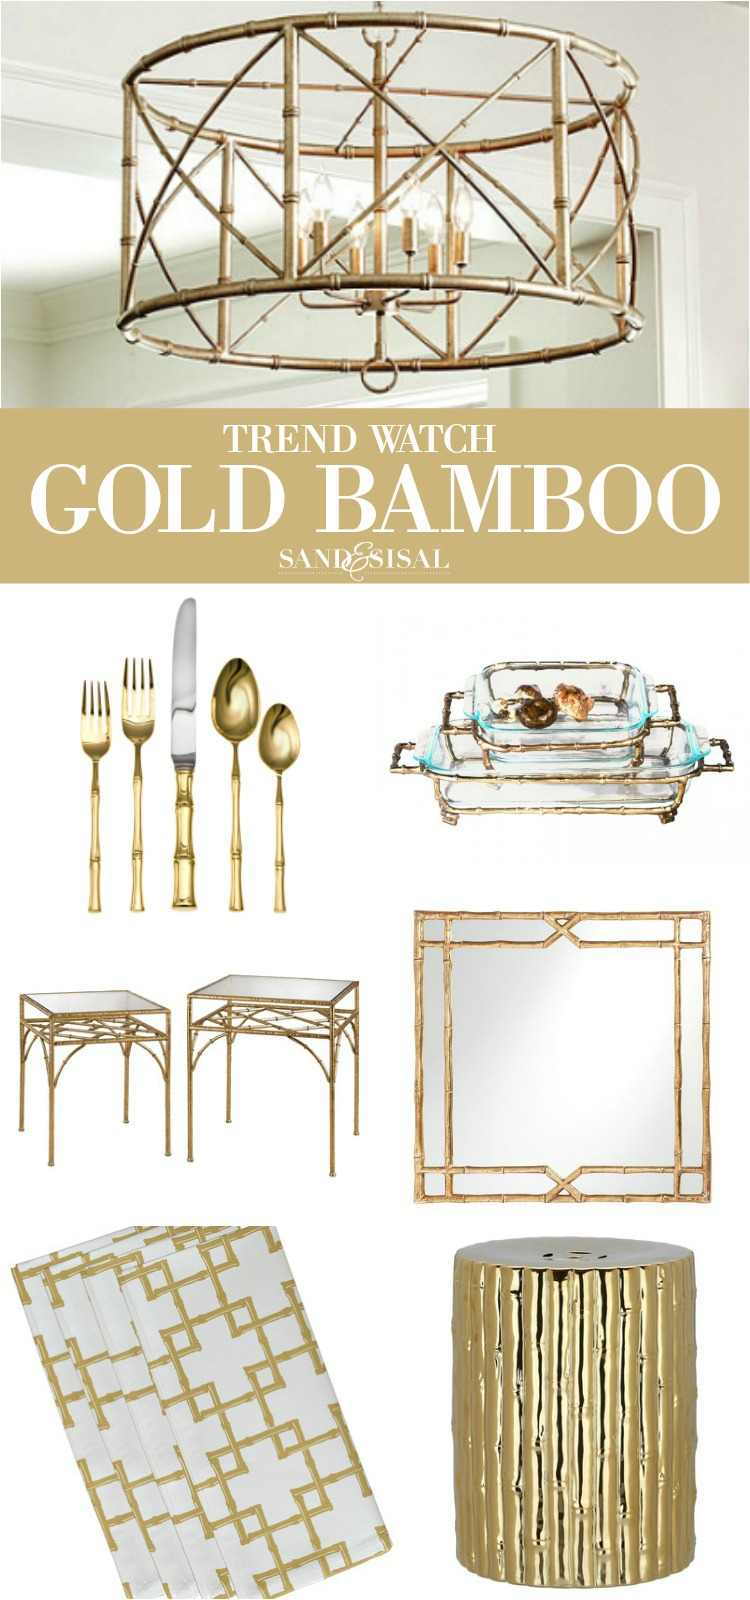 Trend Watch - Gold Bamboo